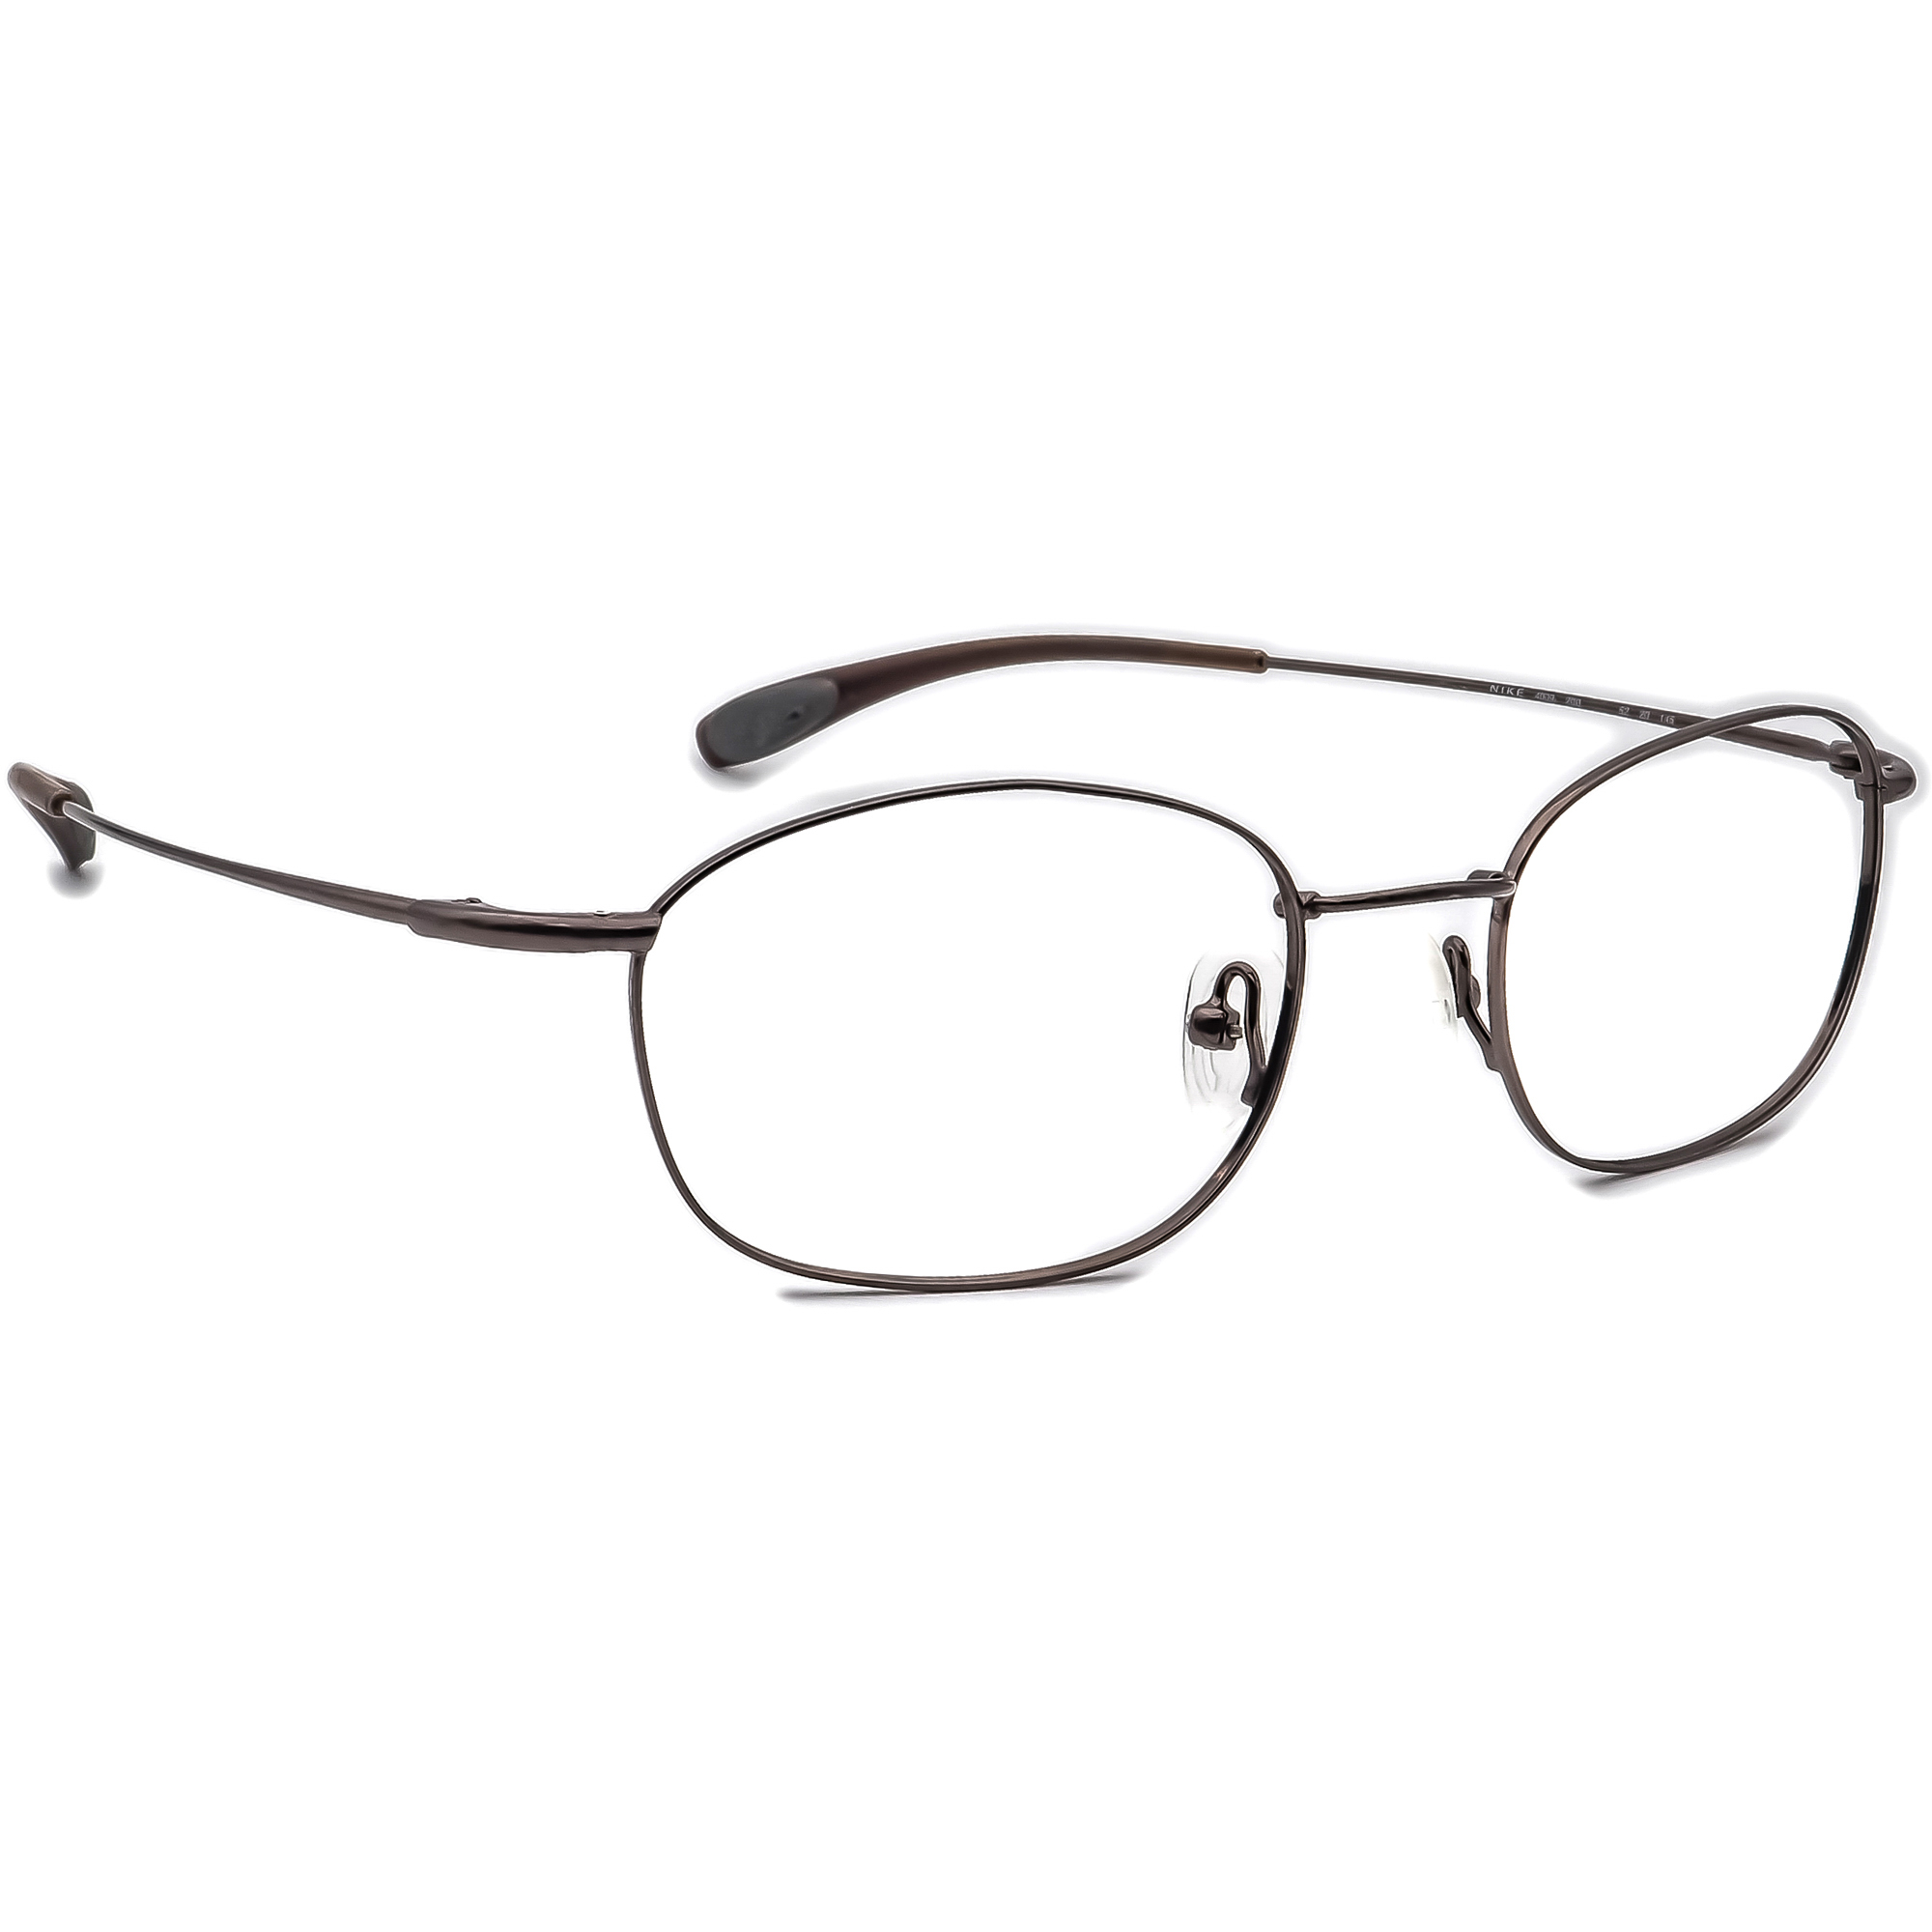 Nike 4009 200 Flexon Eyeglasses